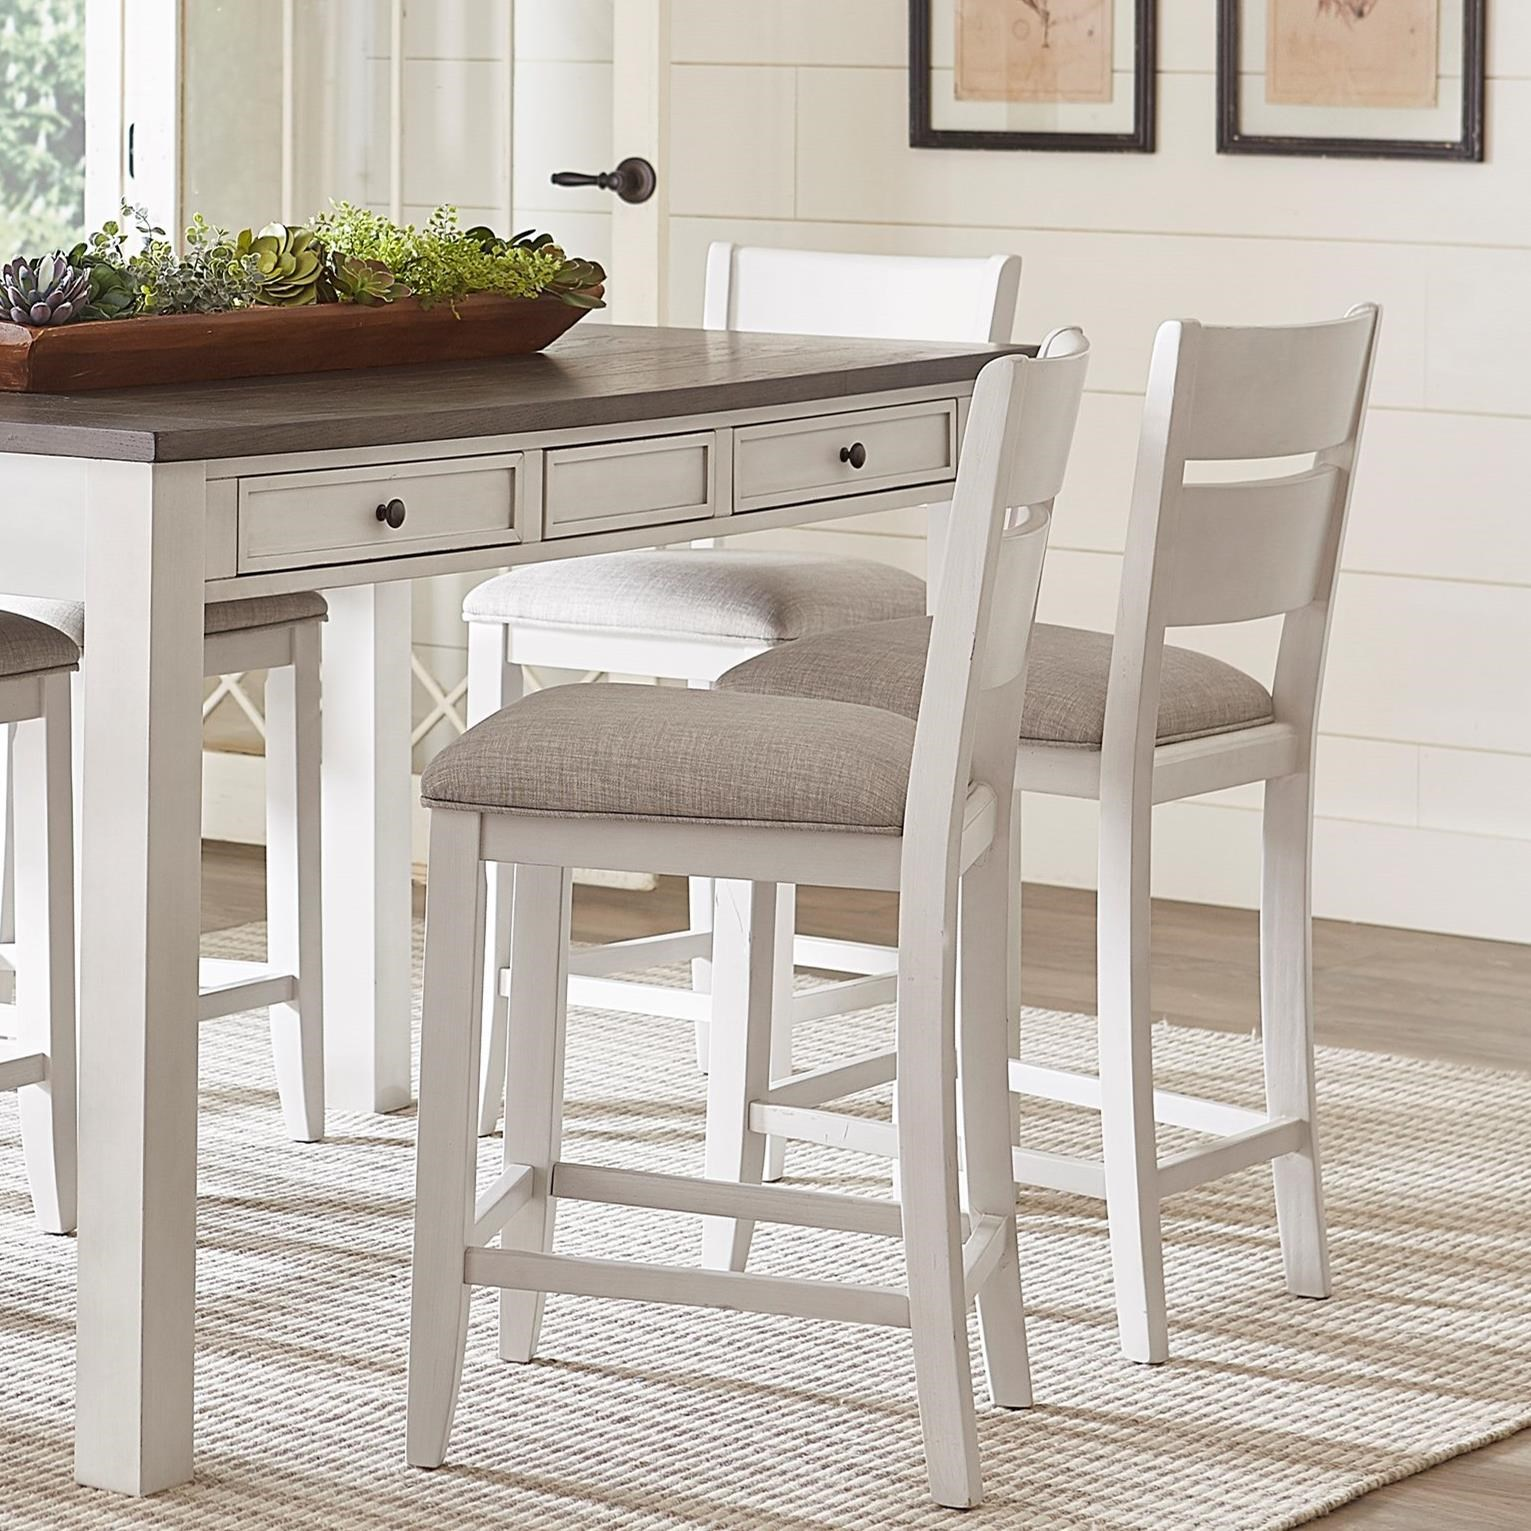 Standard Furniture Kyle Casual 5 Piece Counter Height Dining Set Adcock Furniture Pub Table And Stool Sets